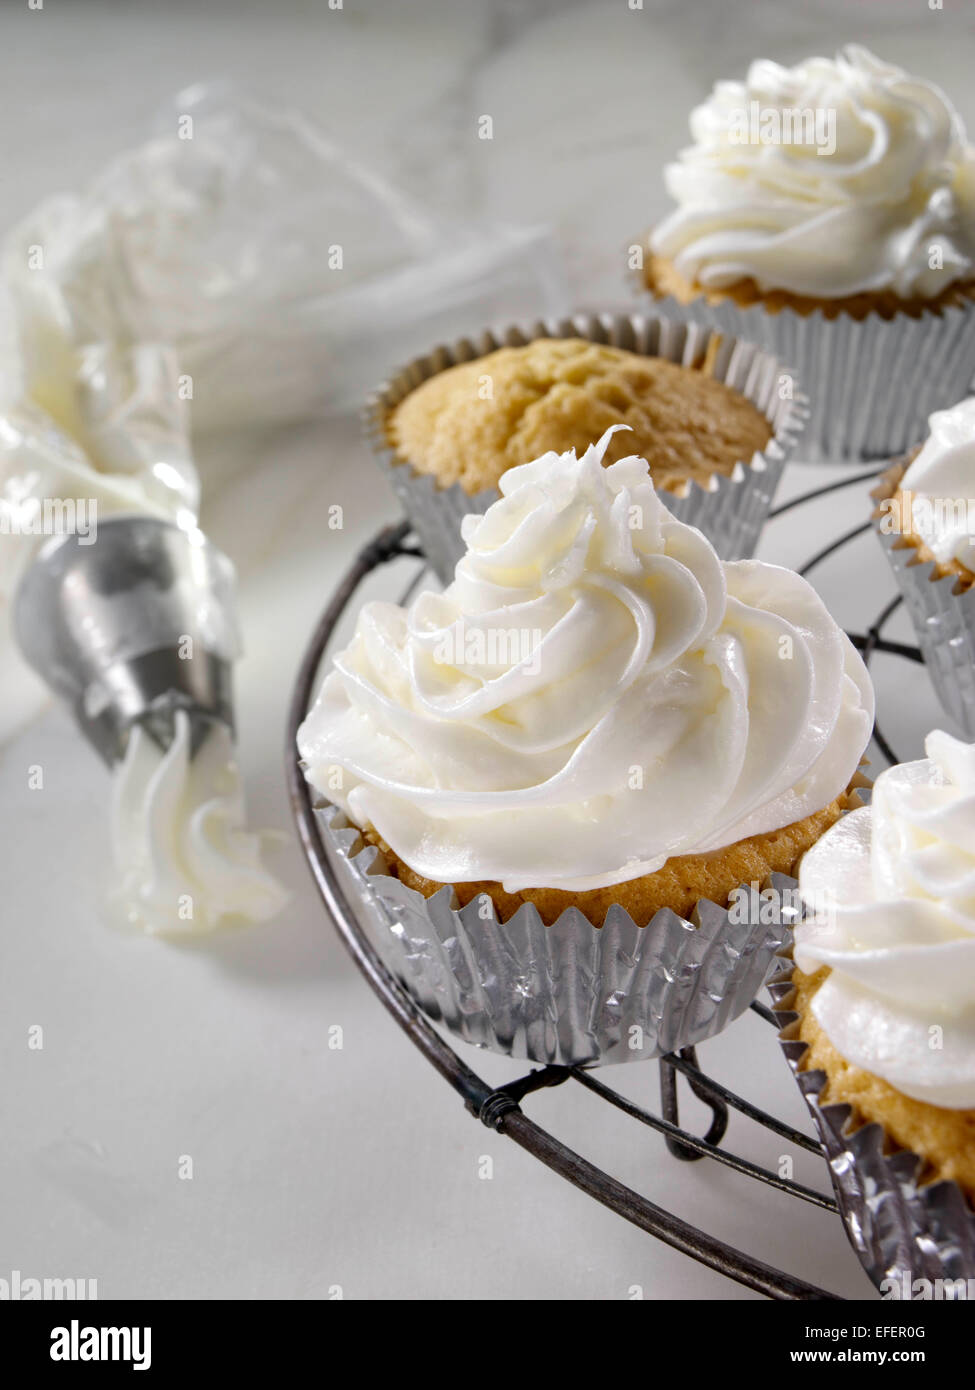 Cake And Frosting Made With Stevia